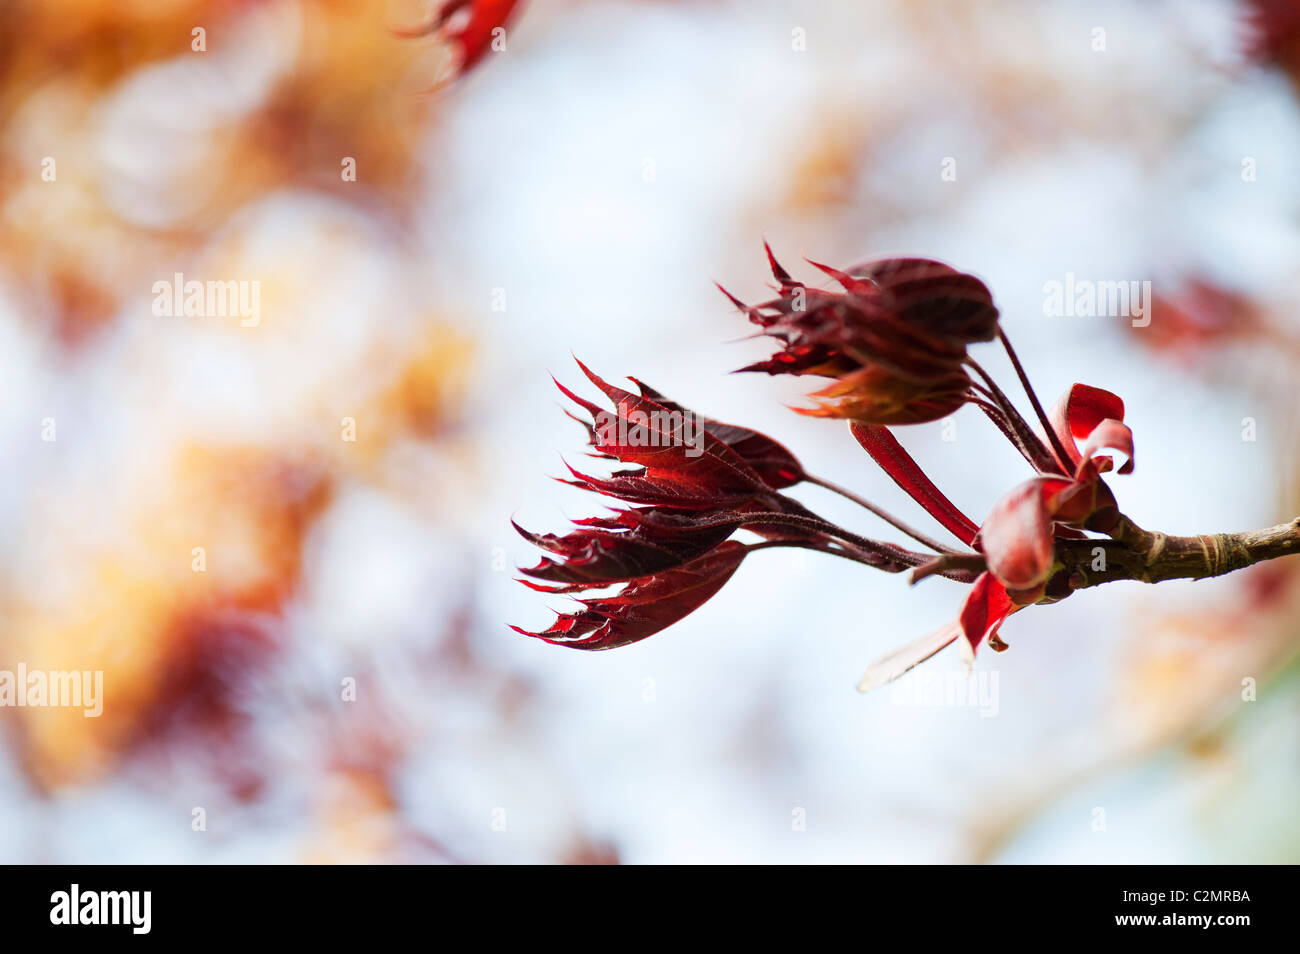 Acer Platanoides 'Goldsworth purple'. Norway Maple tree new leaves in spring. UK - Stock Image